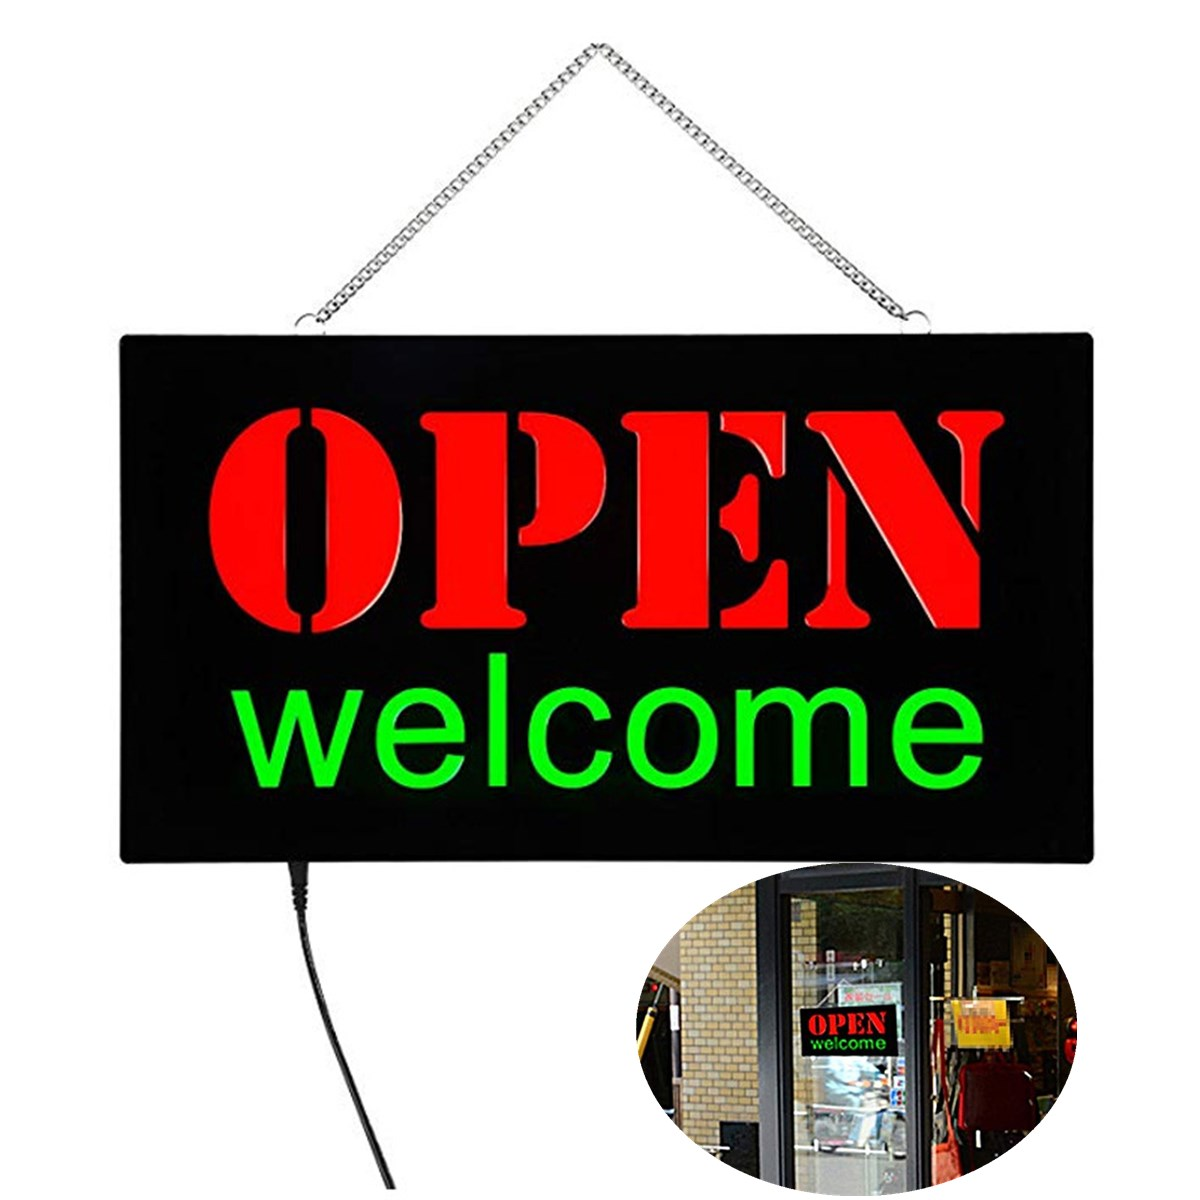 LED Open Sign Advertising Lights For Cafe Bar Pub Neon Light On Off Switch Restaurant Store Open Sign Lighting US PlugLED Open Sign Advertising Lights For Cafe Bar Pub Neon Light On Off Switch Restaurant Store Open Sign Lighting US Plug